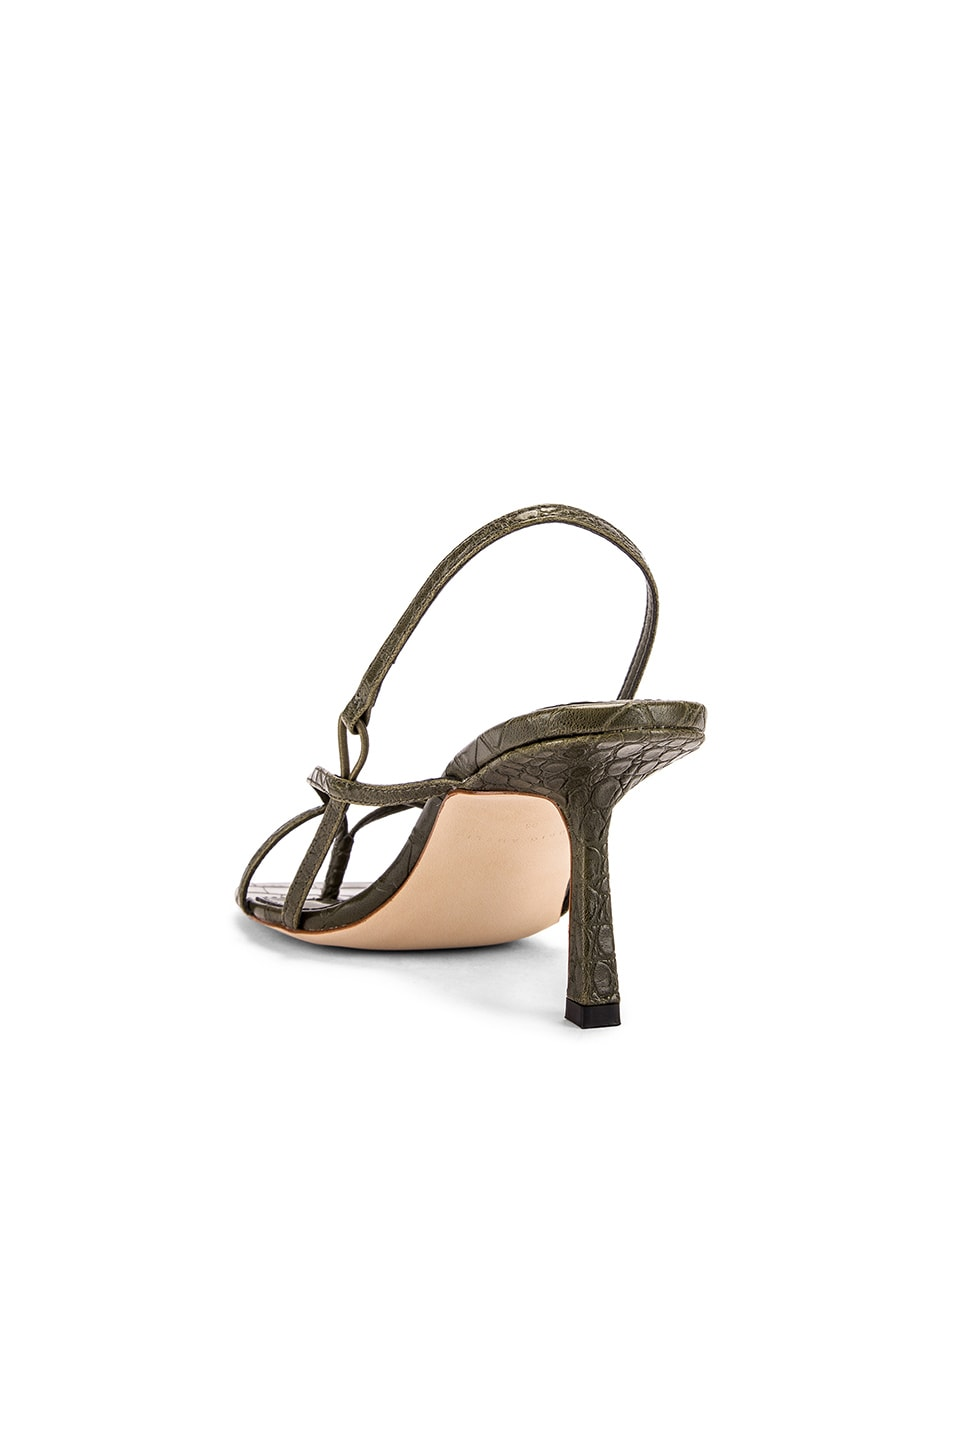 Image 3 of Studio Amelia Vegan 2.4 Flip Flop Heel in Olive Croc Leather